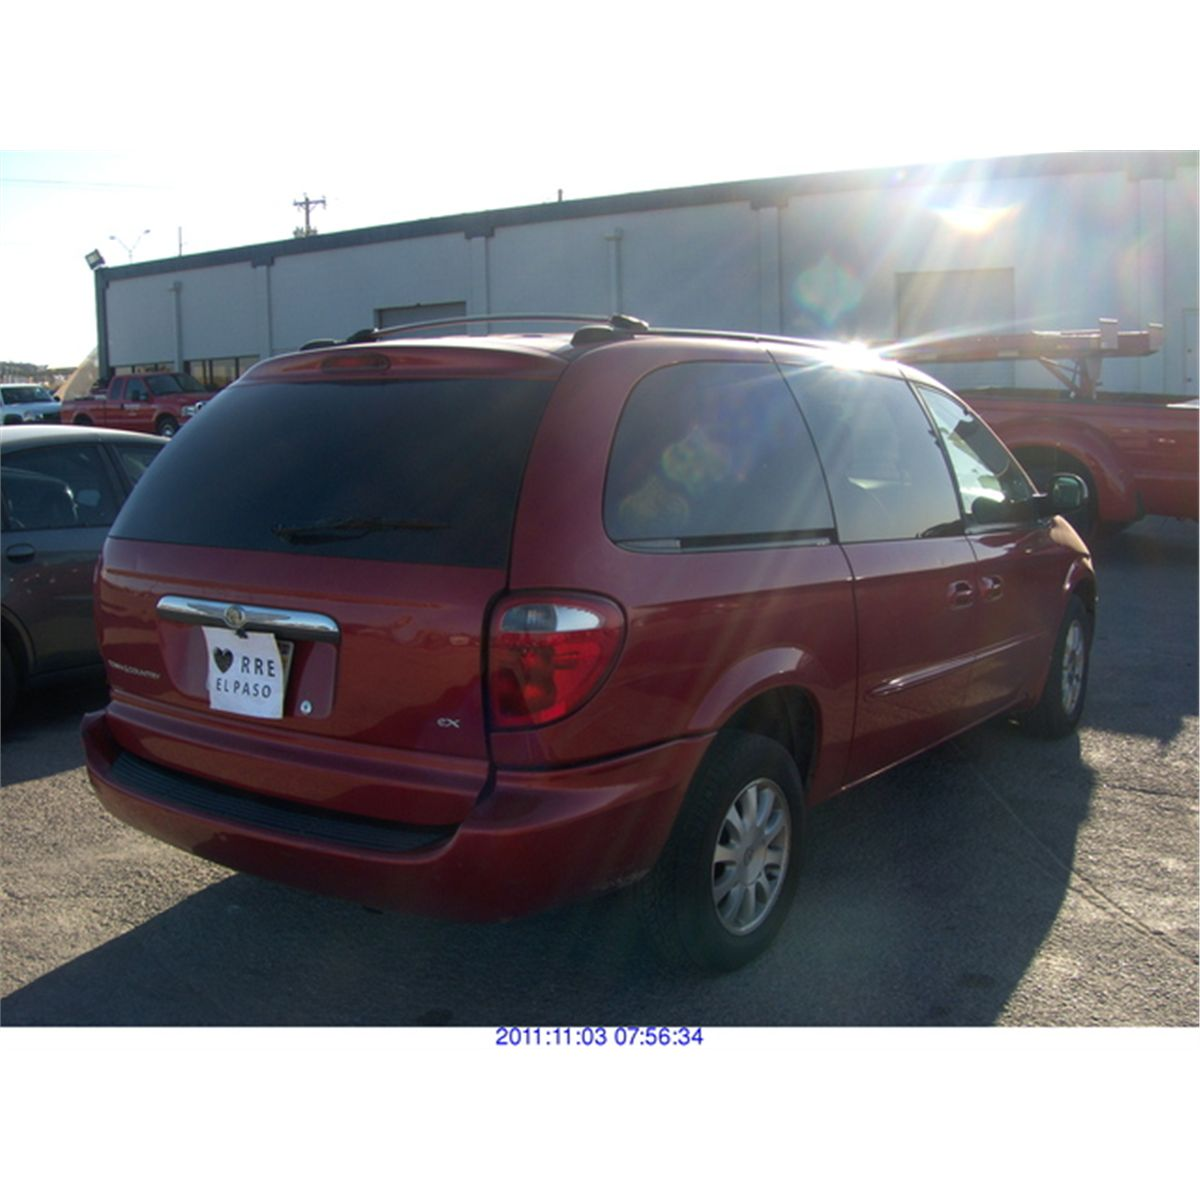 CHRYSLER TOWN AND COUNTRY***SALVAGE TITLE